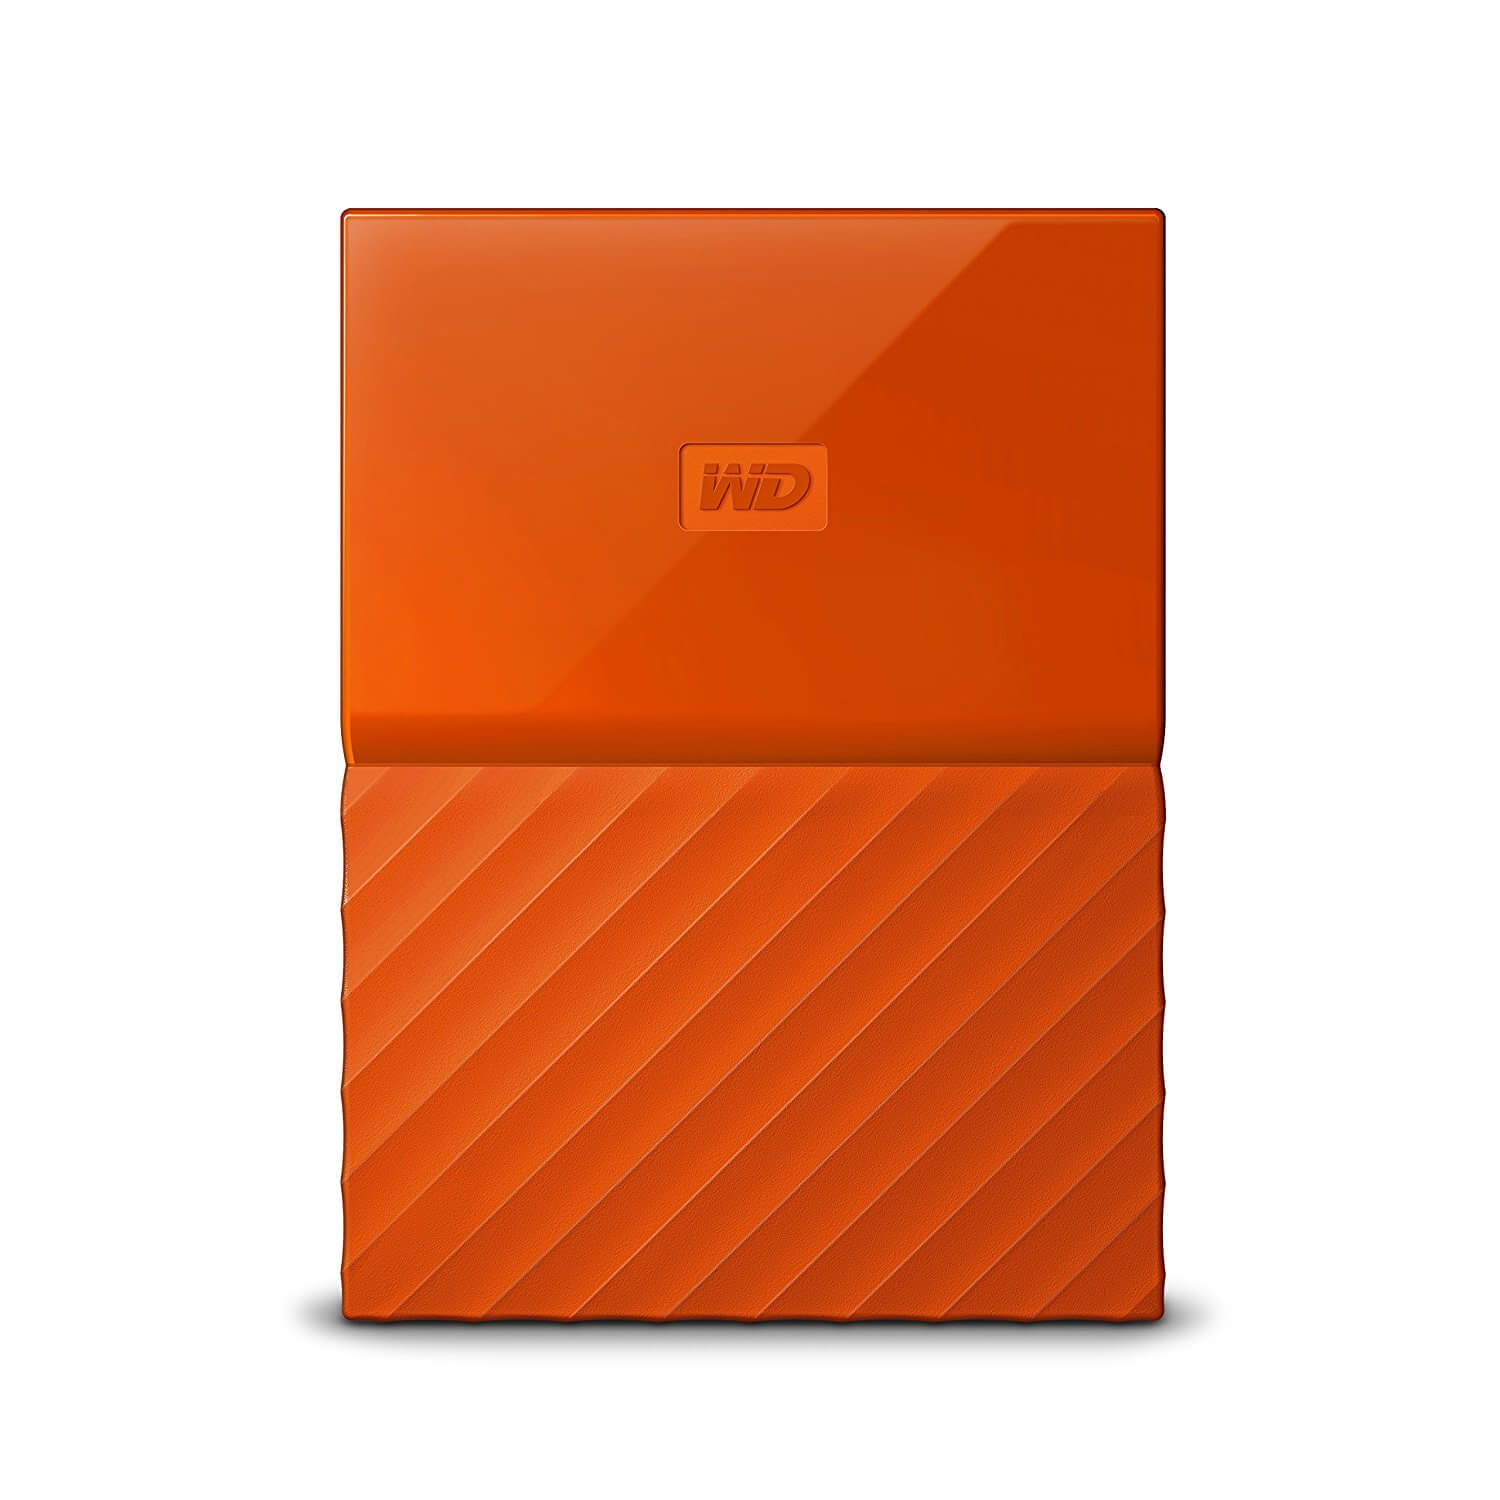 Western Digital MyPassport HDD 4TB USB 3.0 - orange